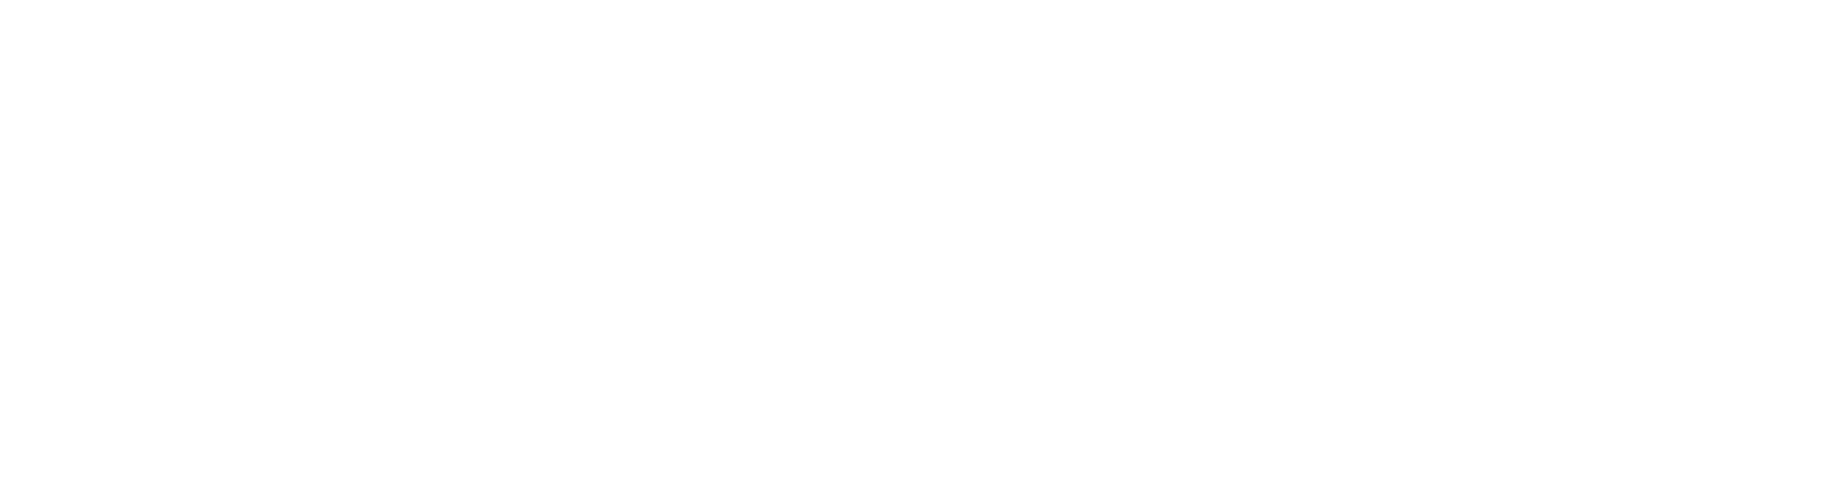 Tampa Bay Home Team